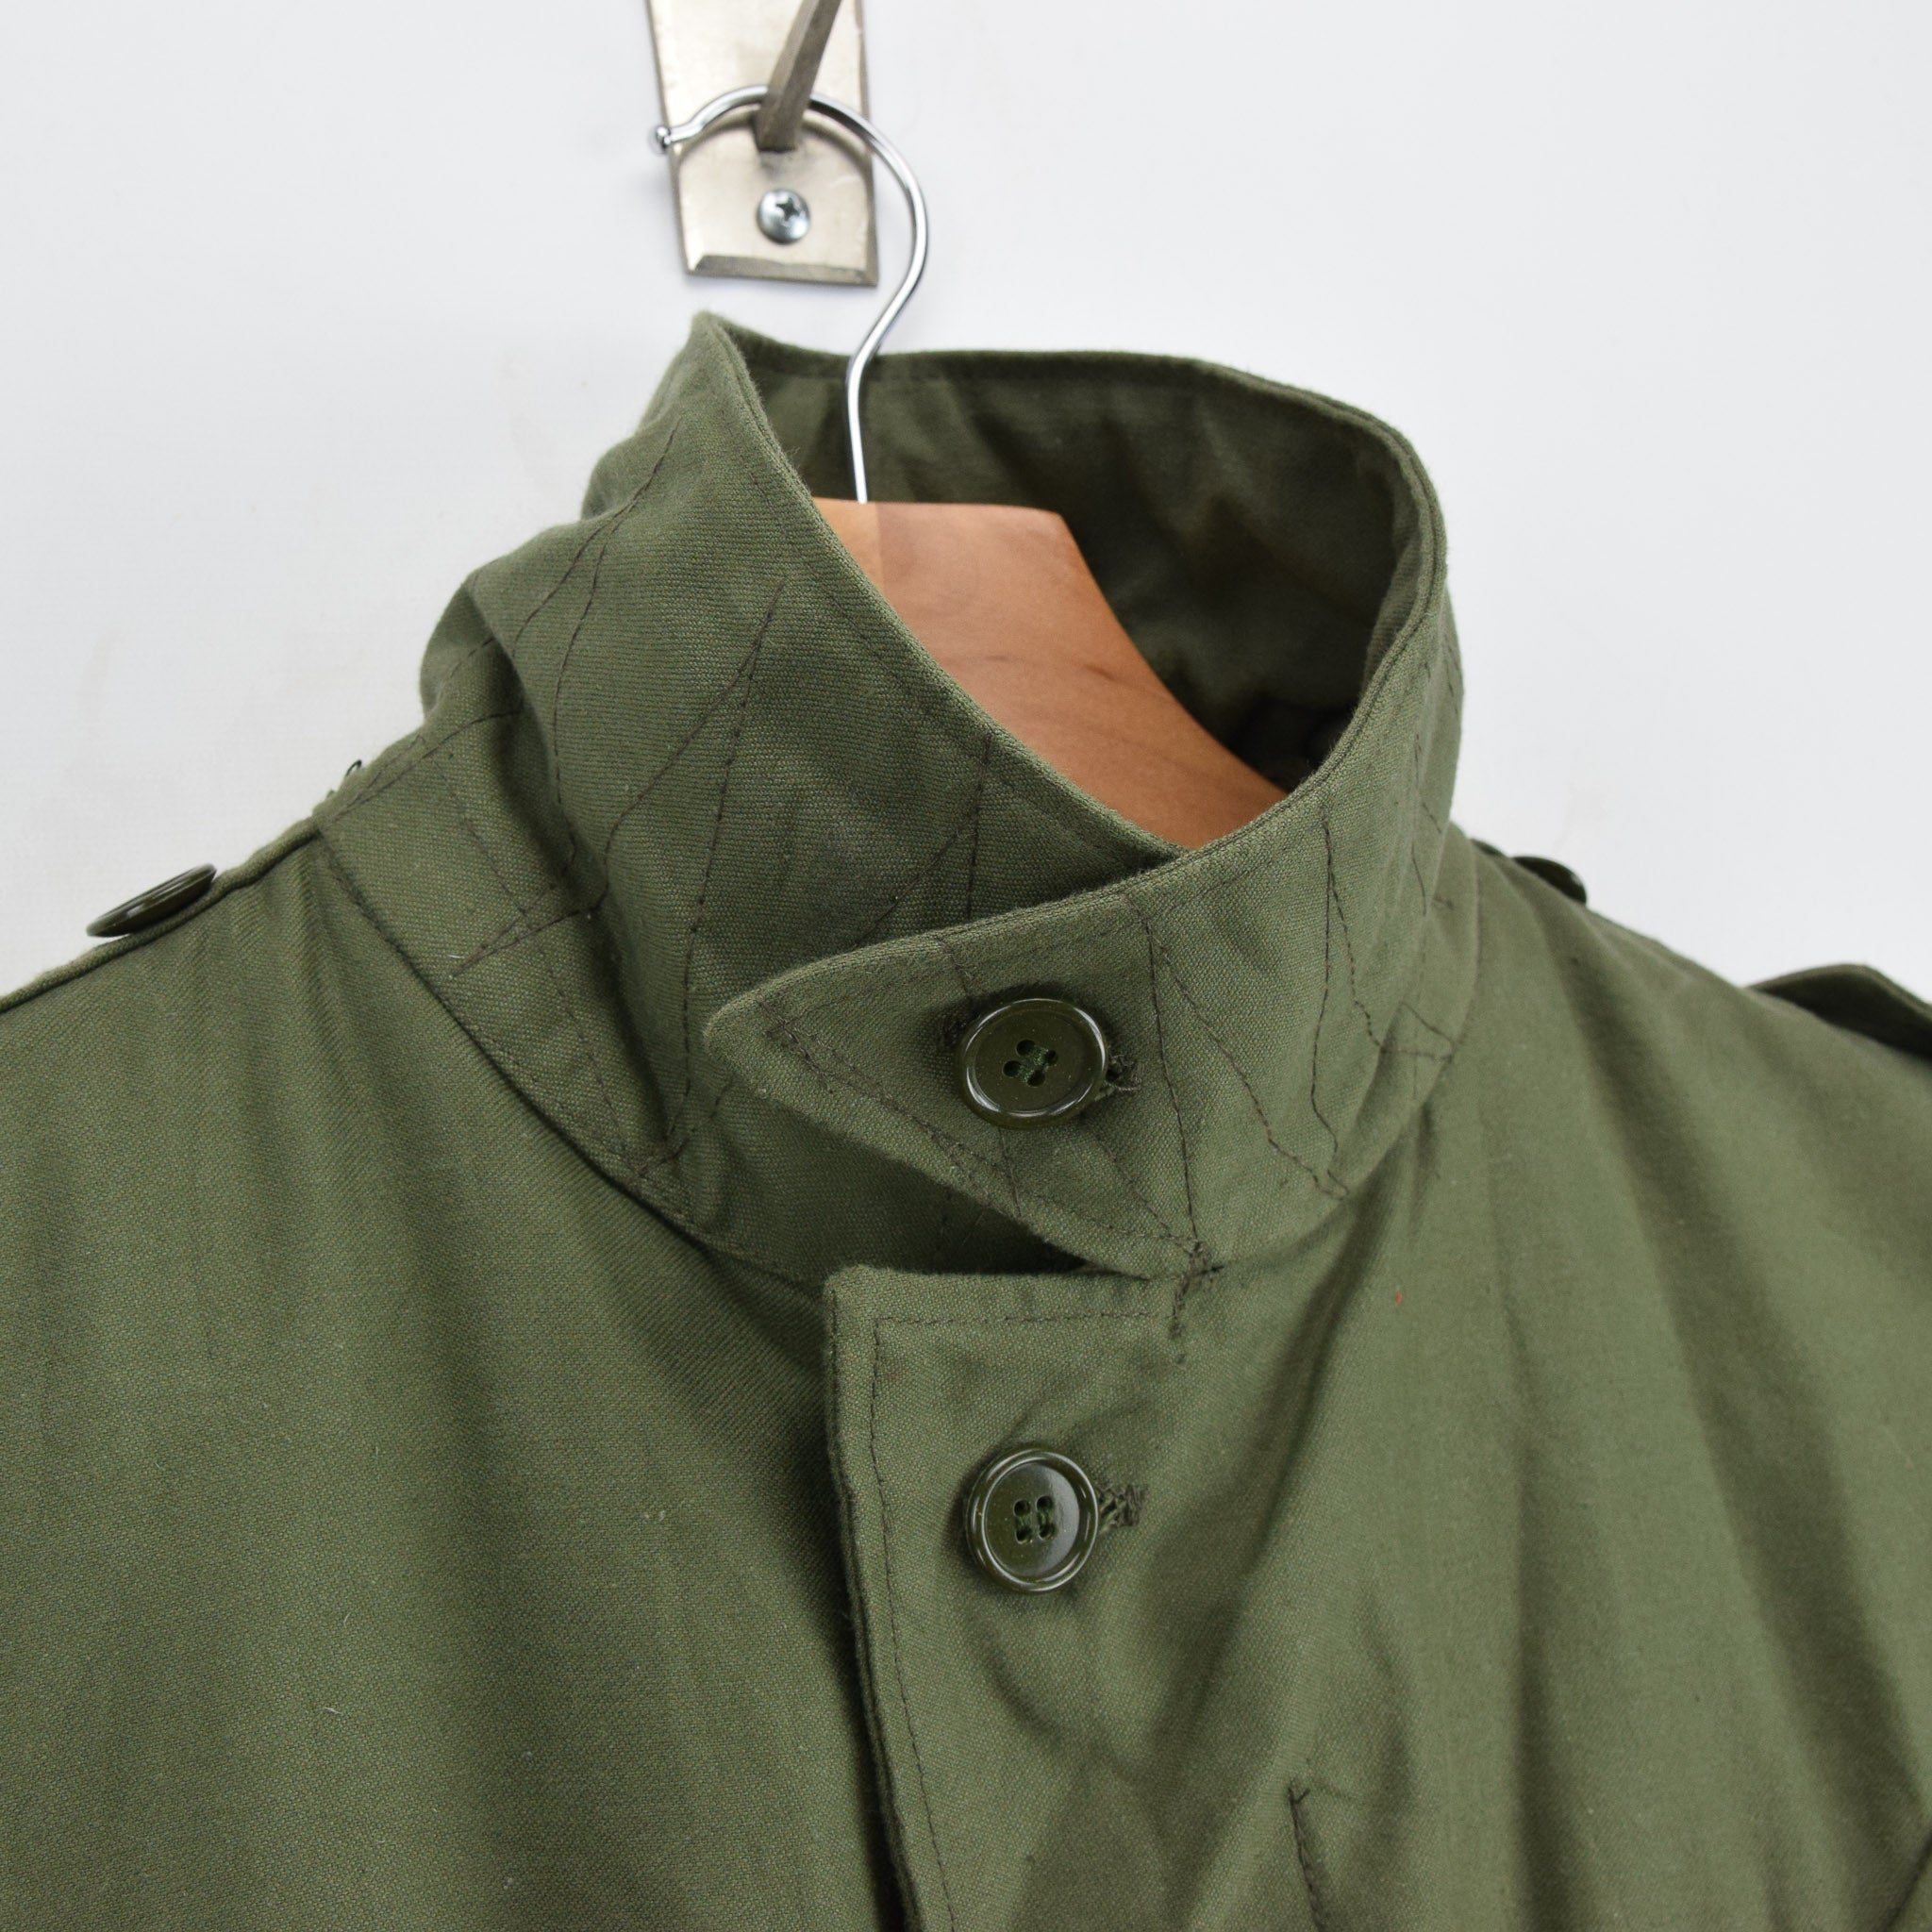 Vintage 80s Seyntex Green Dutch Army Cotton Military Field Jacket with Liner M